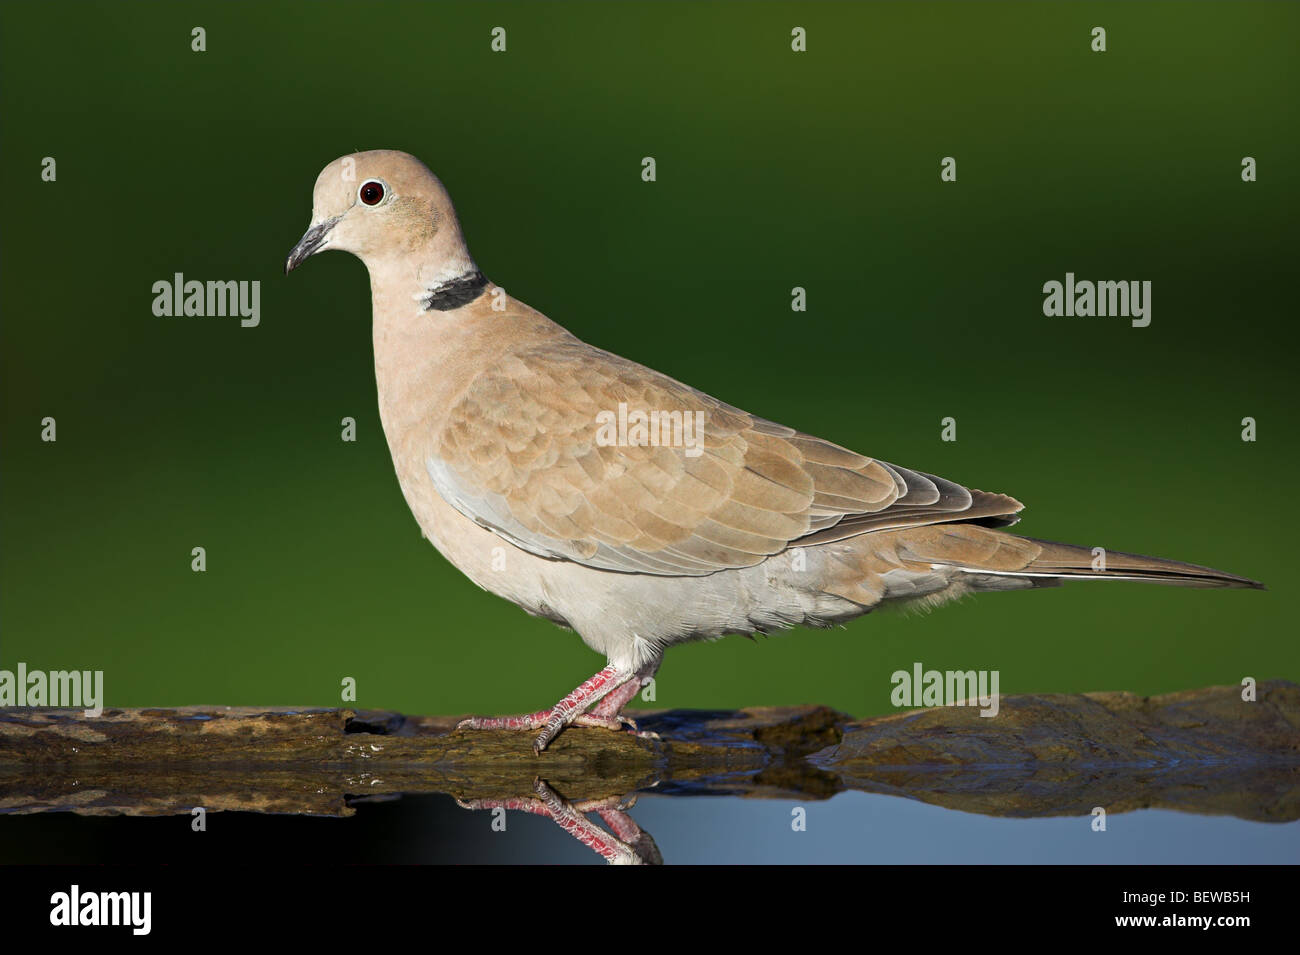 Eurasian Collared-Dove (Streptopelia decaocto) at watering place, side view Stock Photo